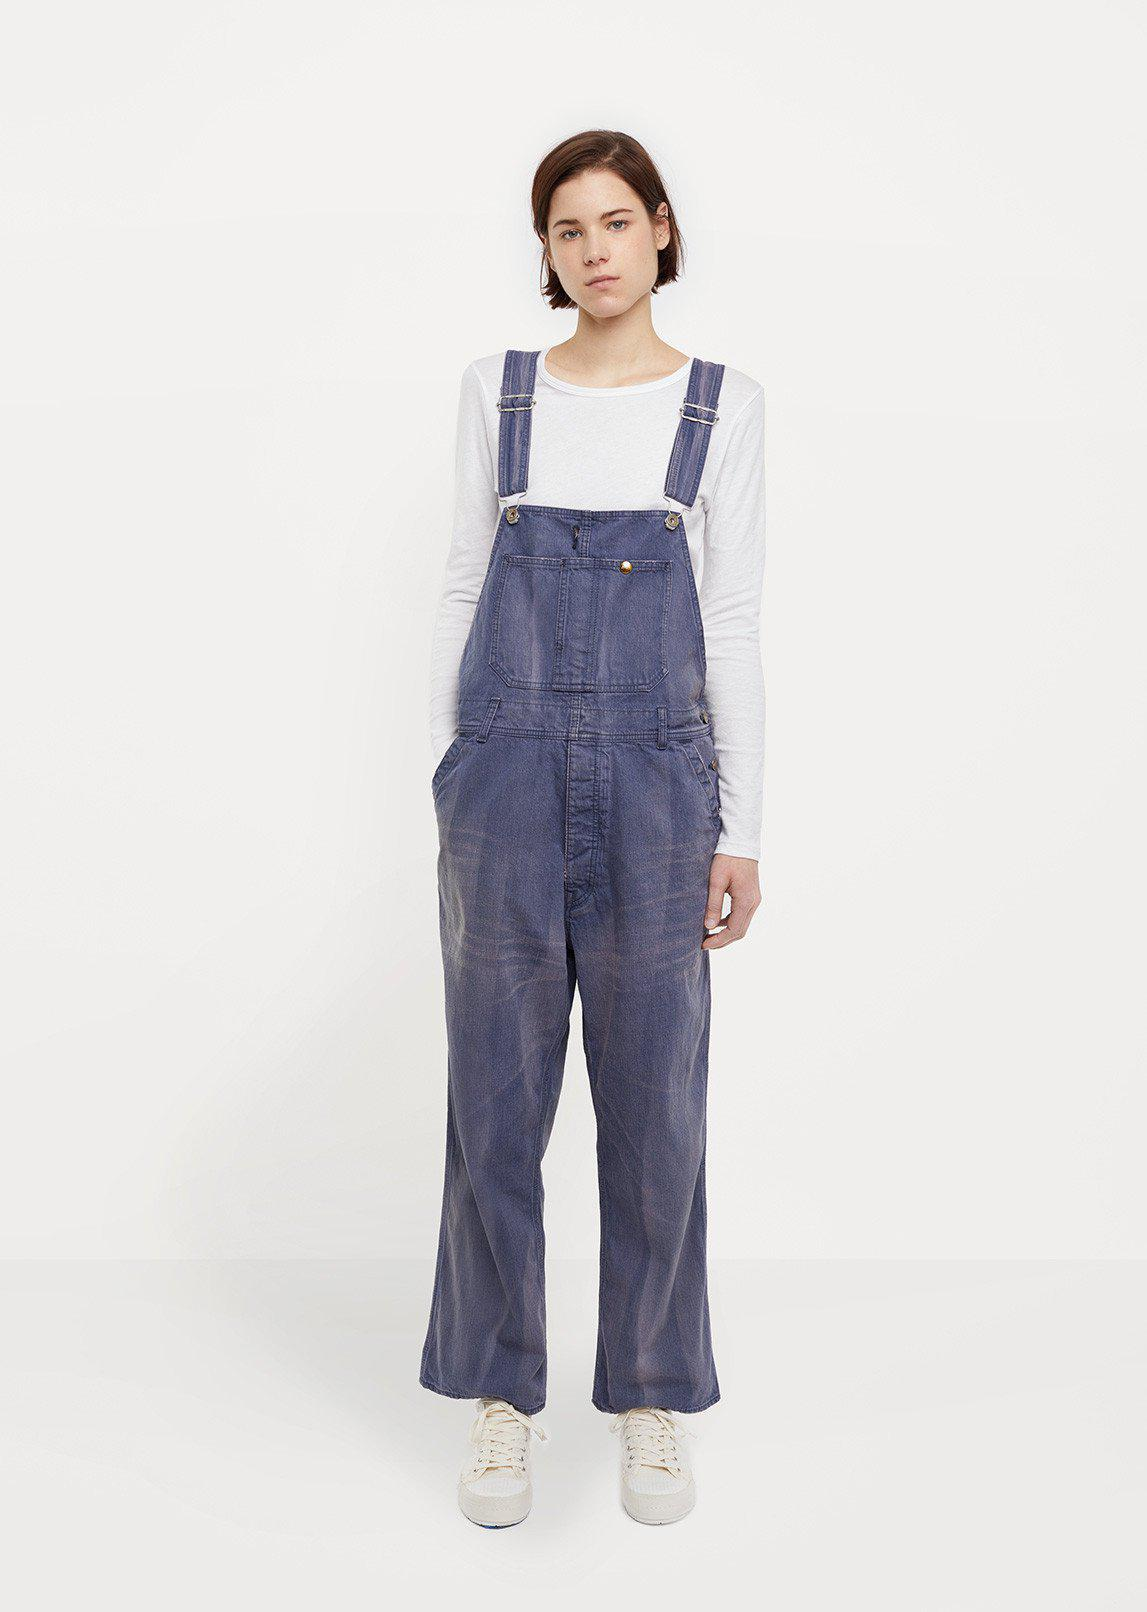 853d68eee54 Gallery. Previously sold at  La Garçonne · Women s Denim Overalls Women s  Denim Jumpsuits ...